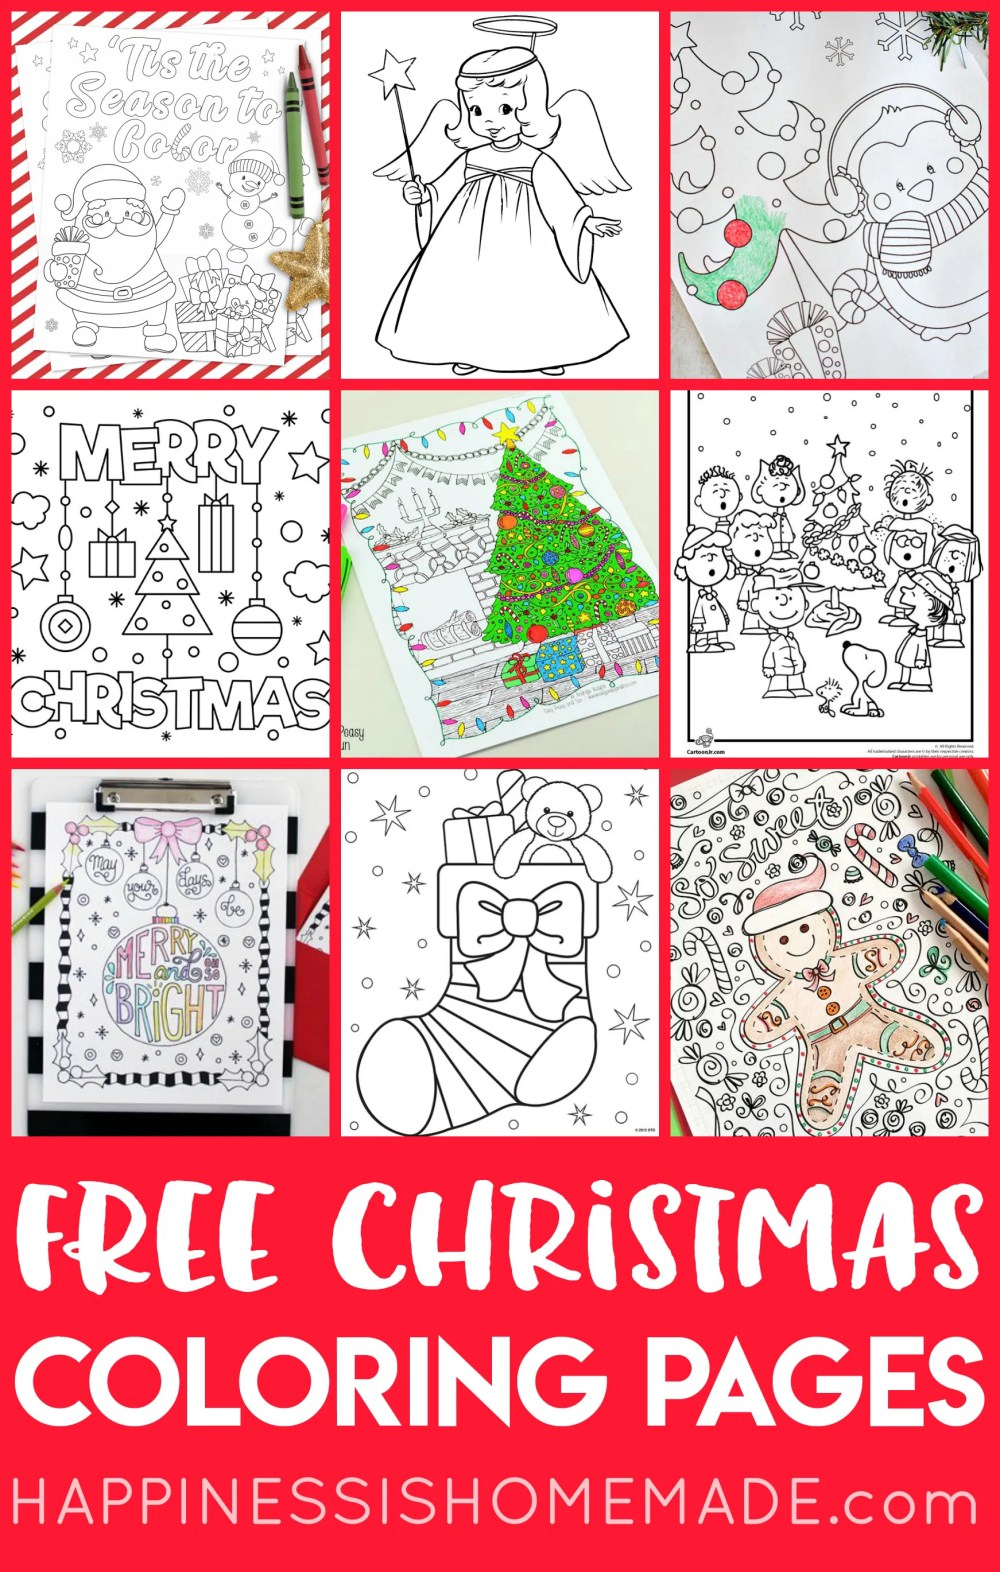 medium resolution of FREE Christmas Coloring Pages for Adults and Kids - Happiness is Homemade